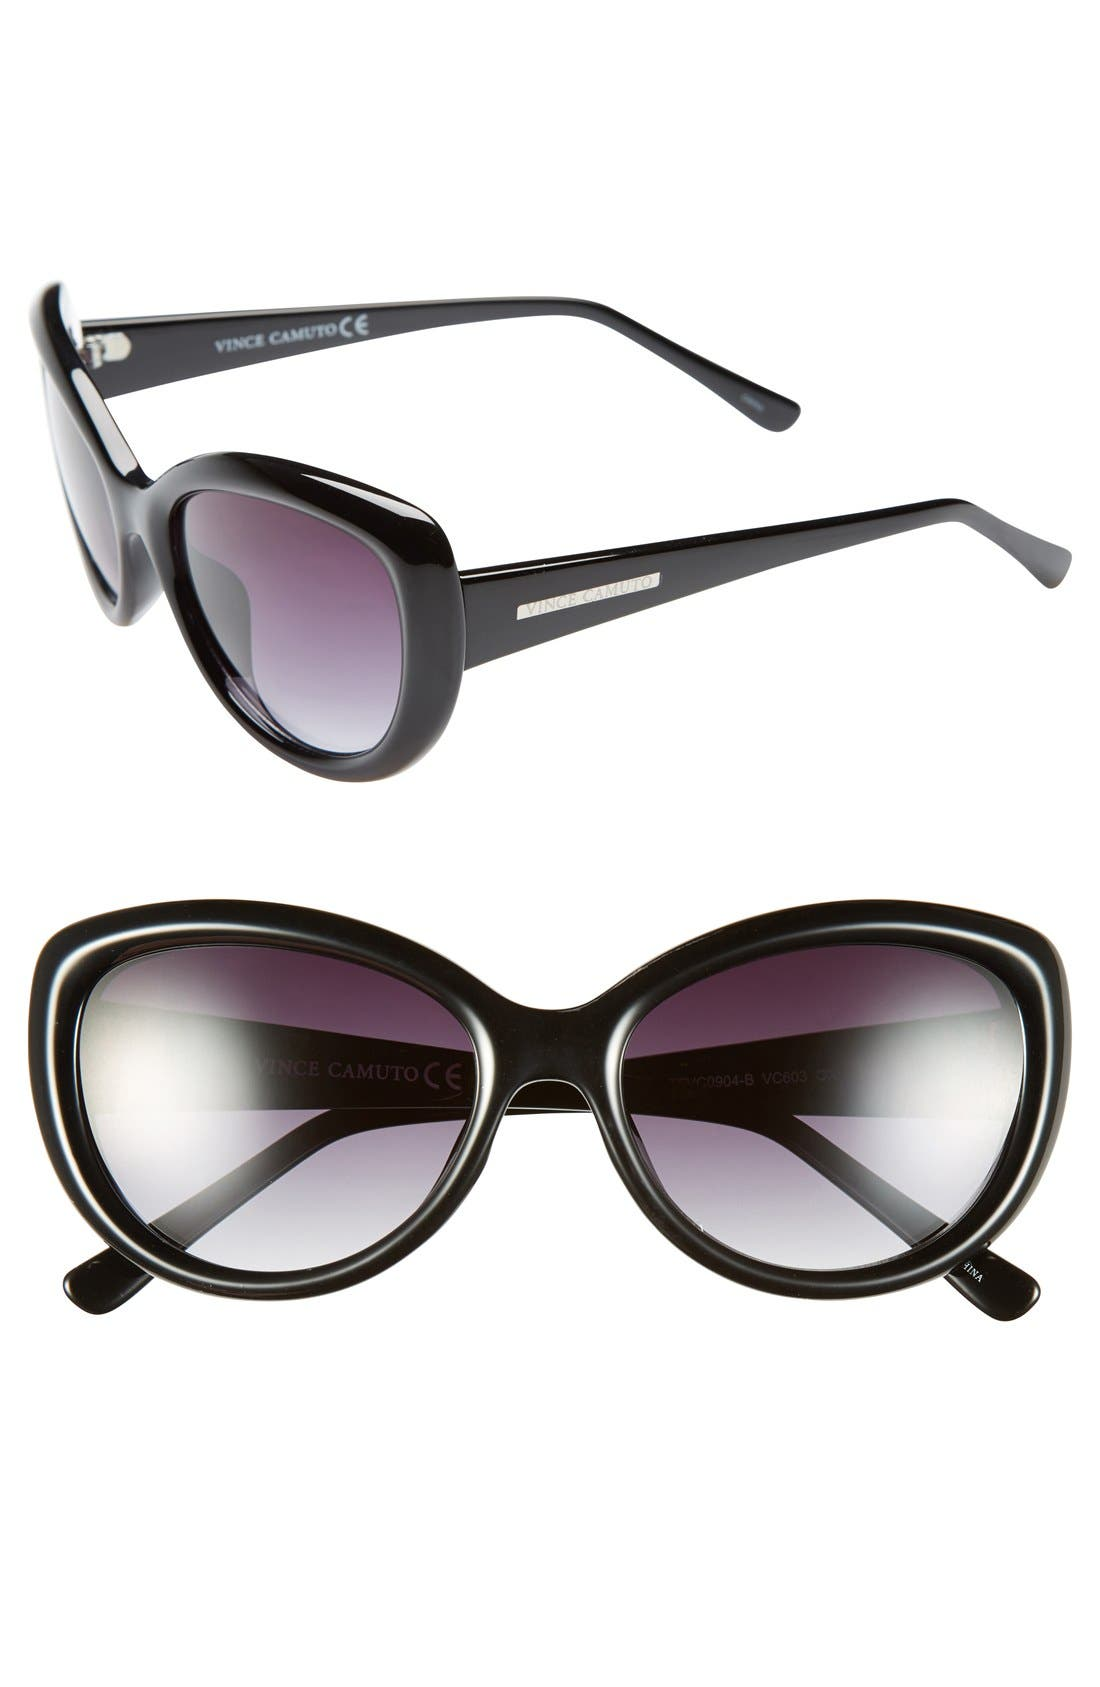 Main Image - Vince Camuto 59mm Cat Eye Sunglasses